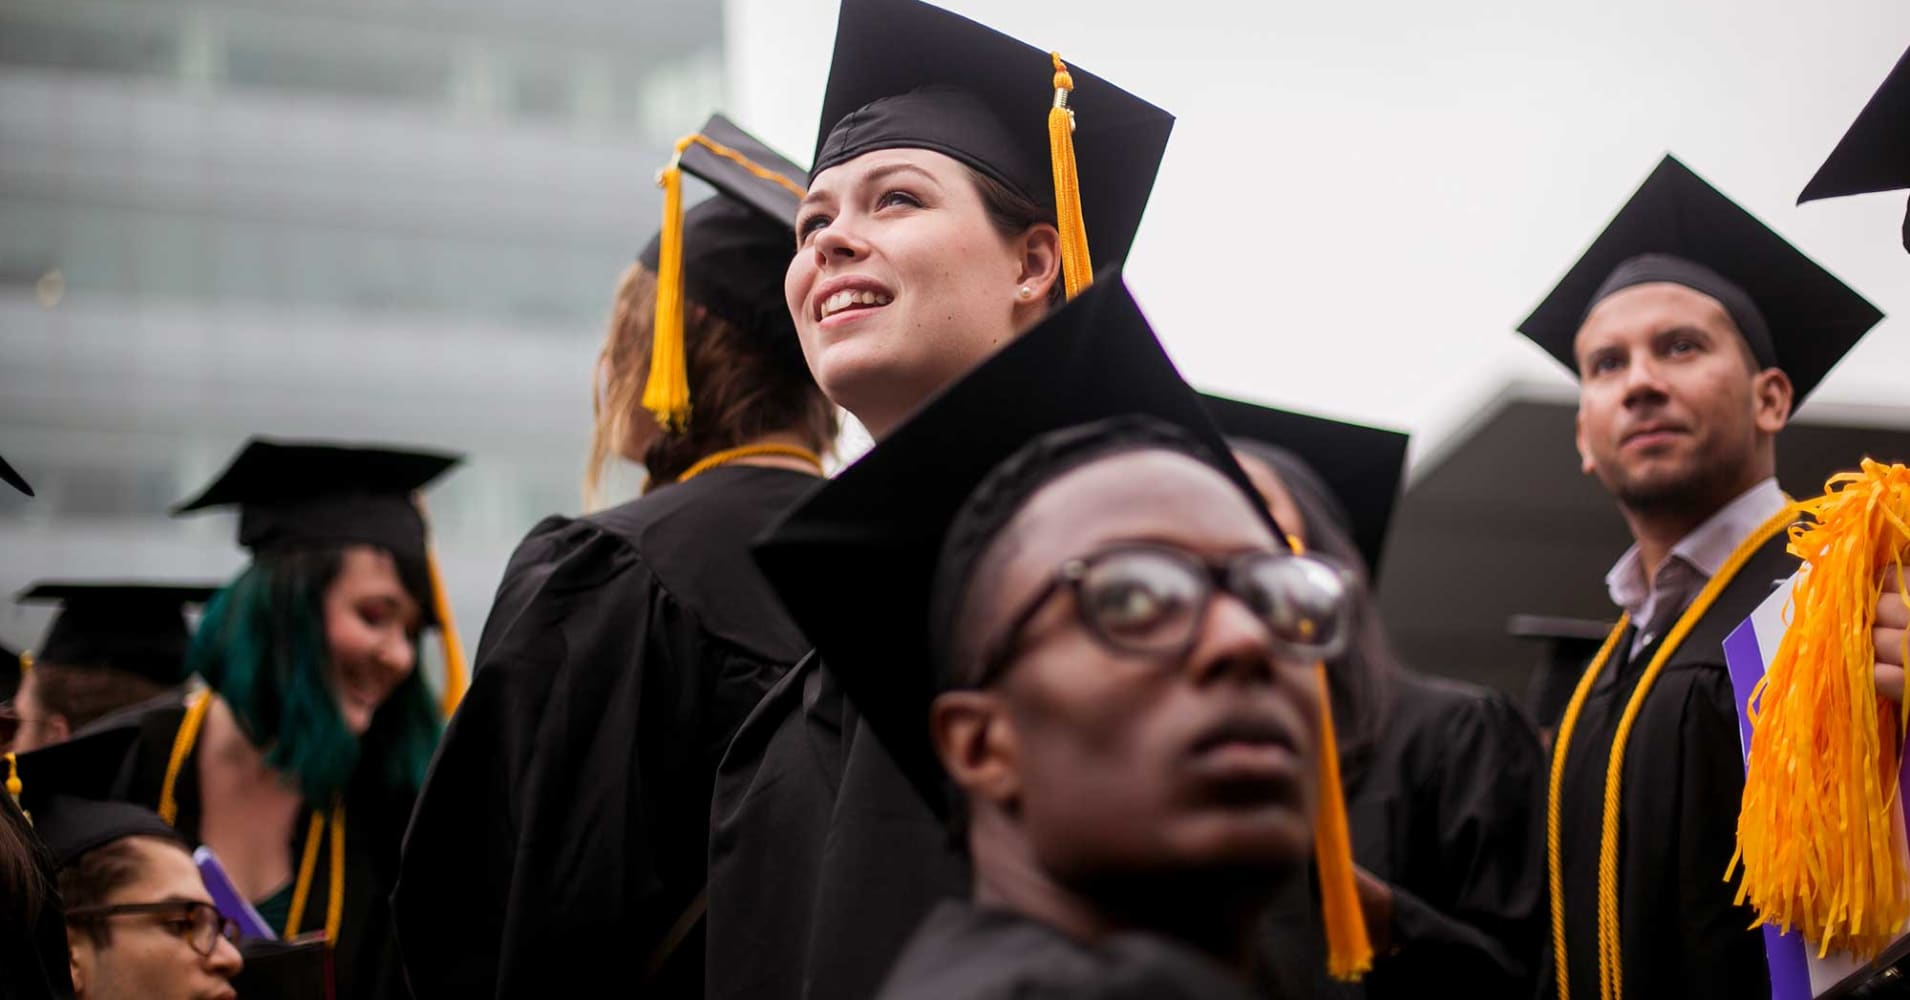 Students from the City College of New York at their graduation ceremony.